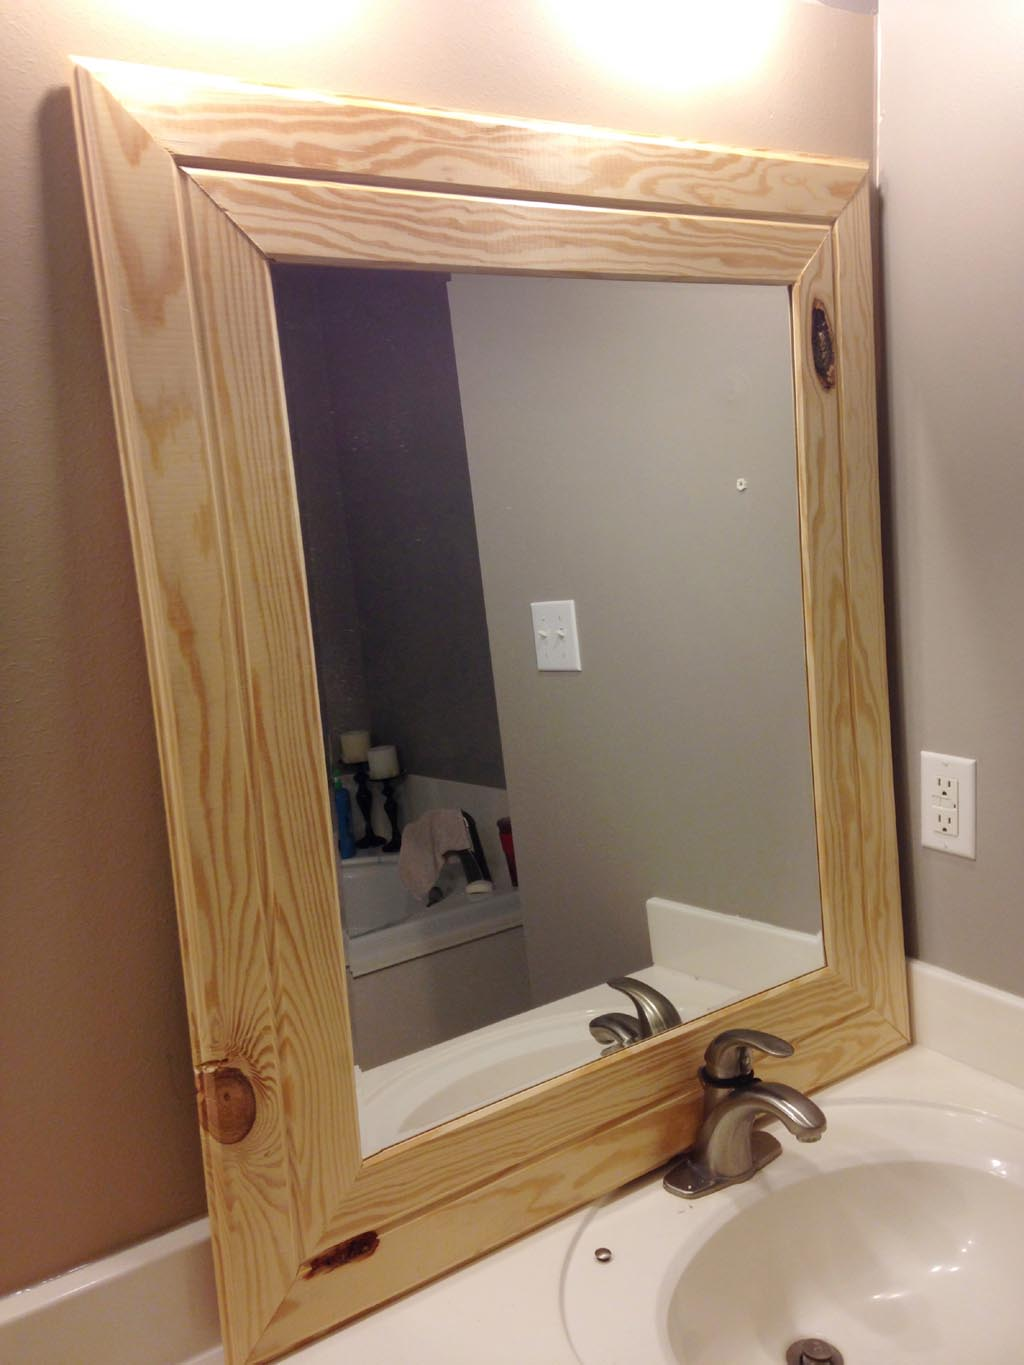 Cheap wood framed mirrors best decor things Frames for bathroom wall mirrors